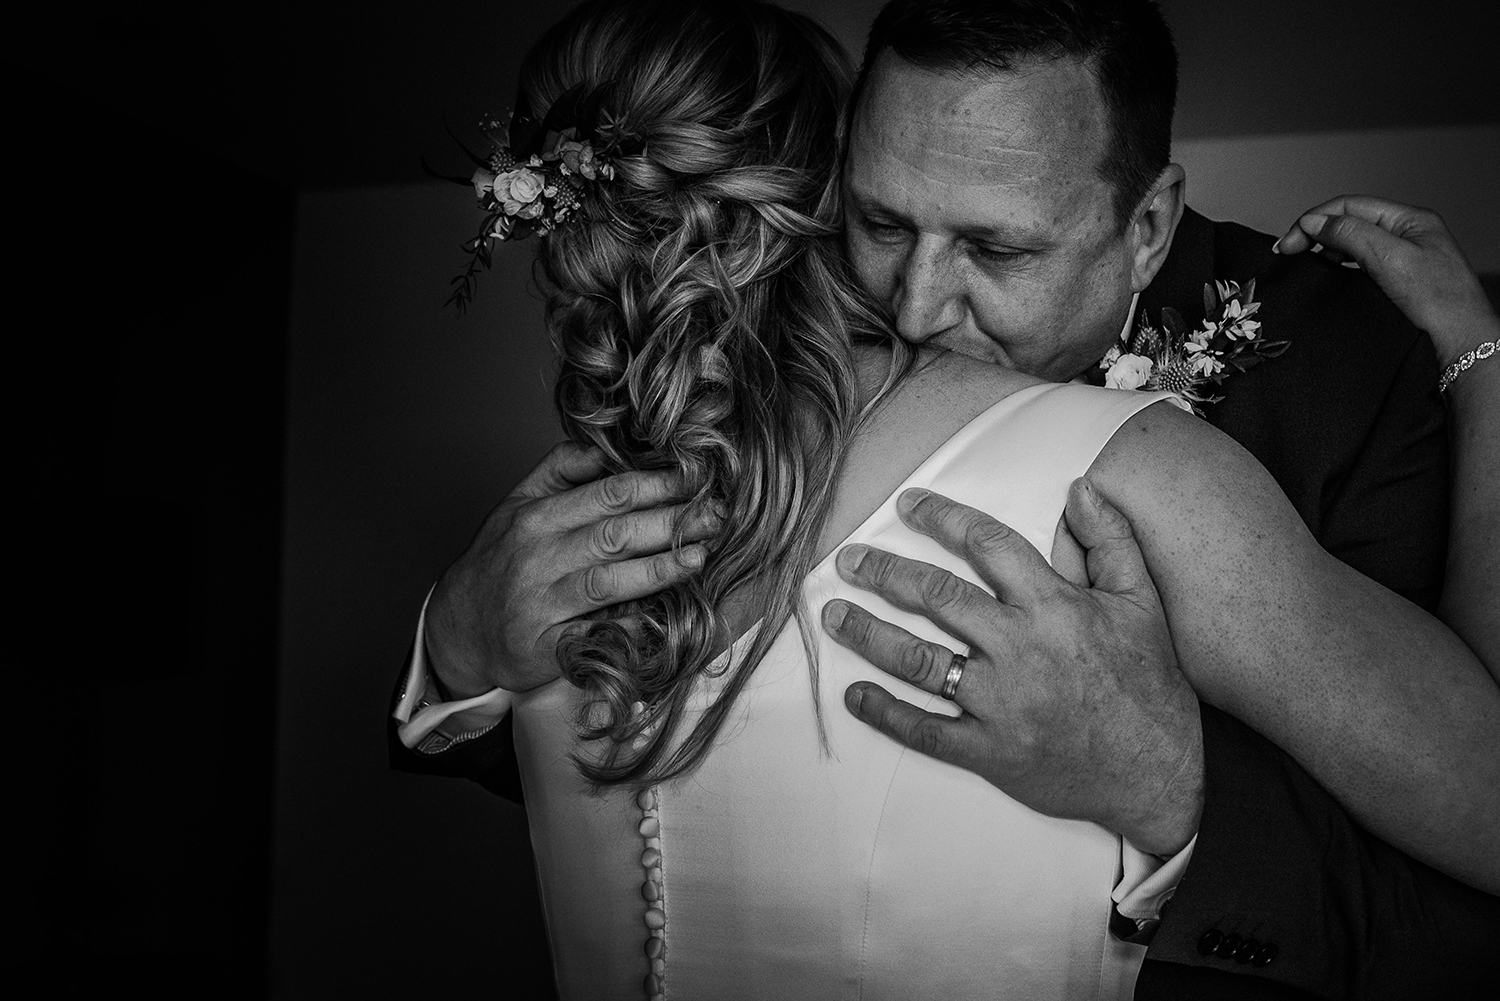 bw photo of the brides dad giving her a big hug